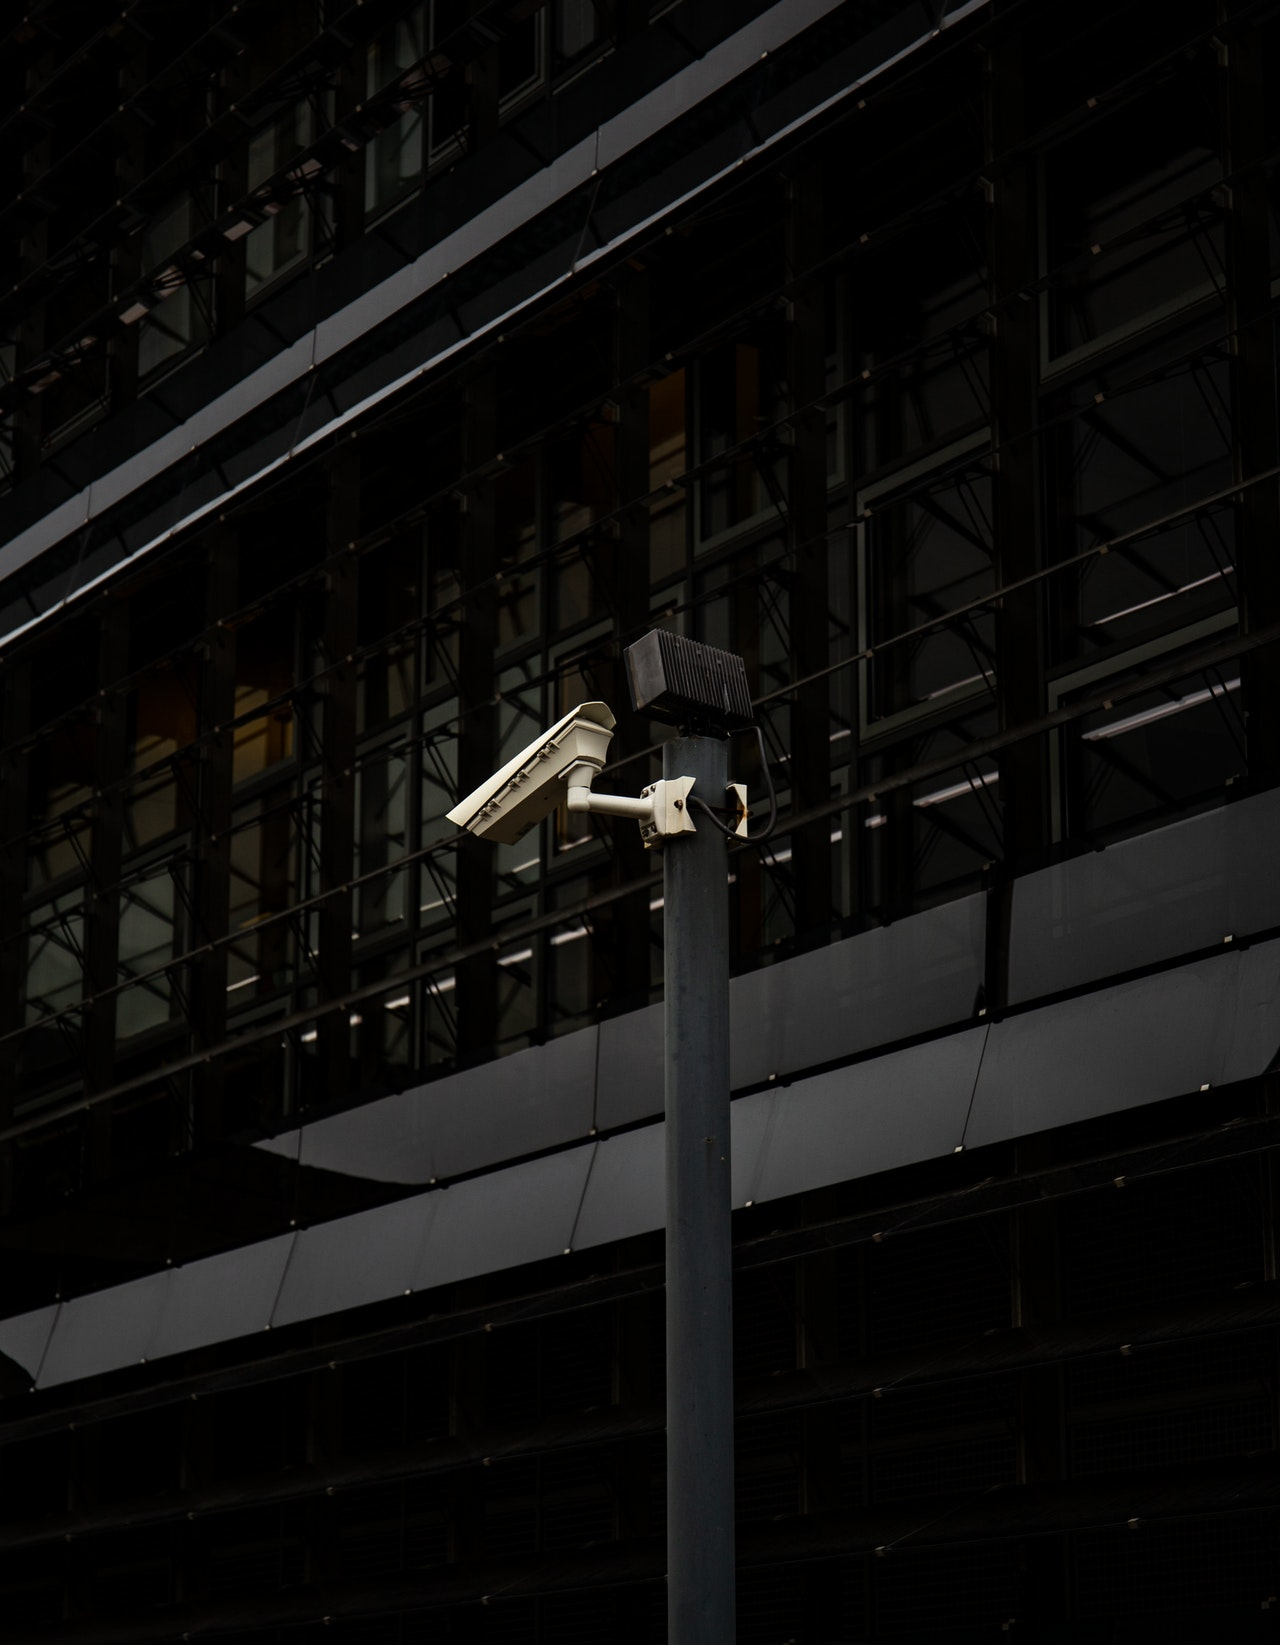 cctv camera on a post outside a building